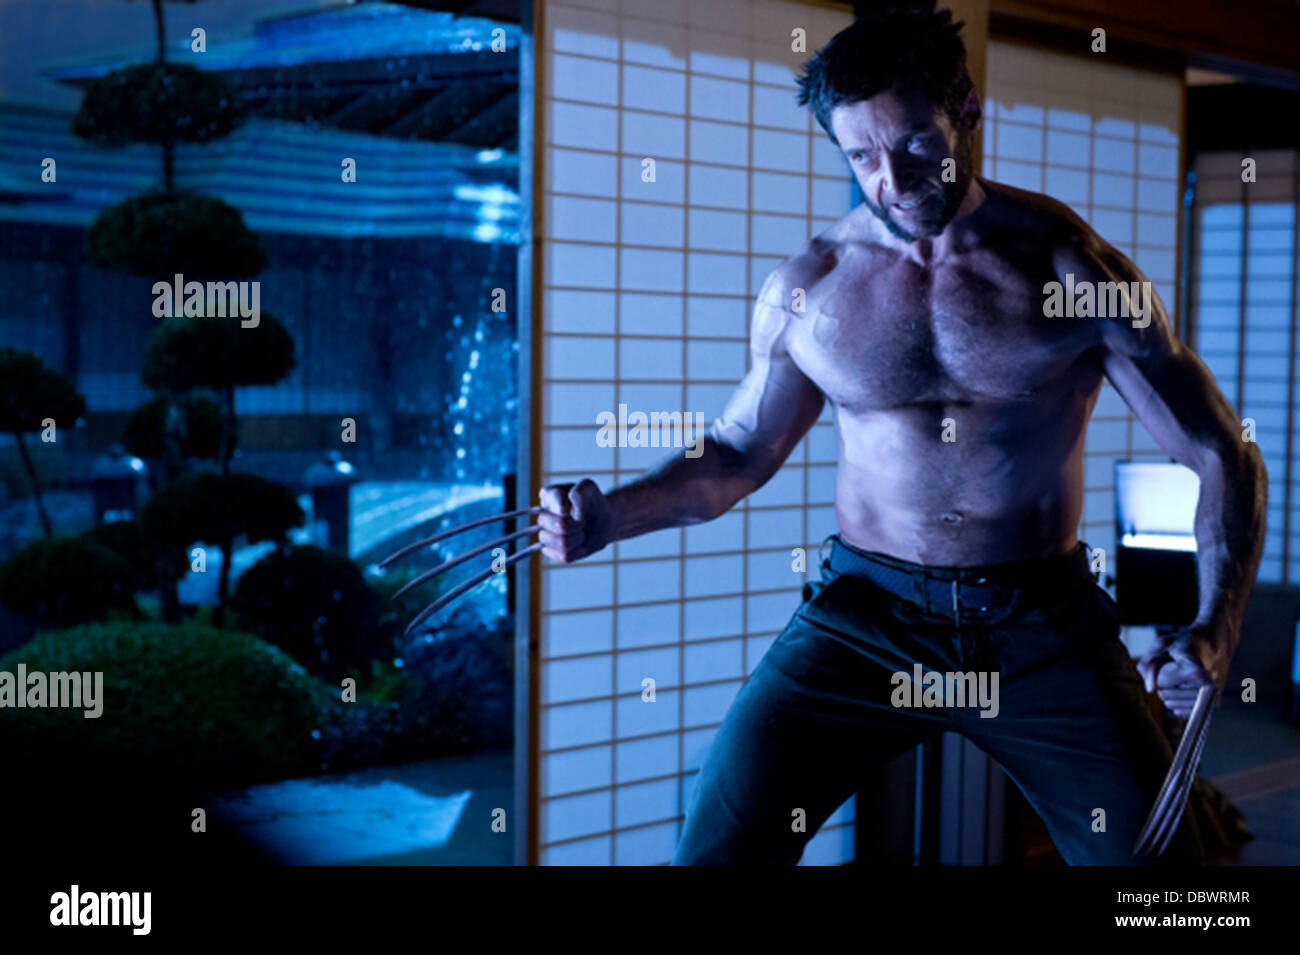 THE WOLVERINE (2013) HUGH JACKMAN JAMES MANGOLD (DIR) 005 MOVIESTORE COLLECTION LTD - Stock Image